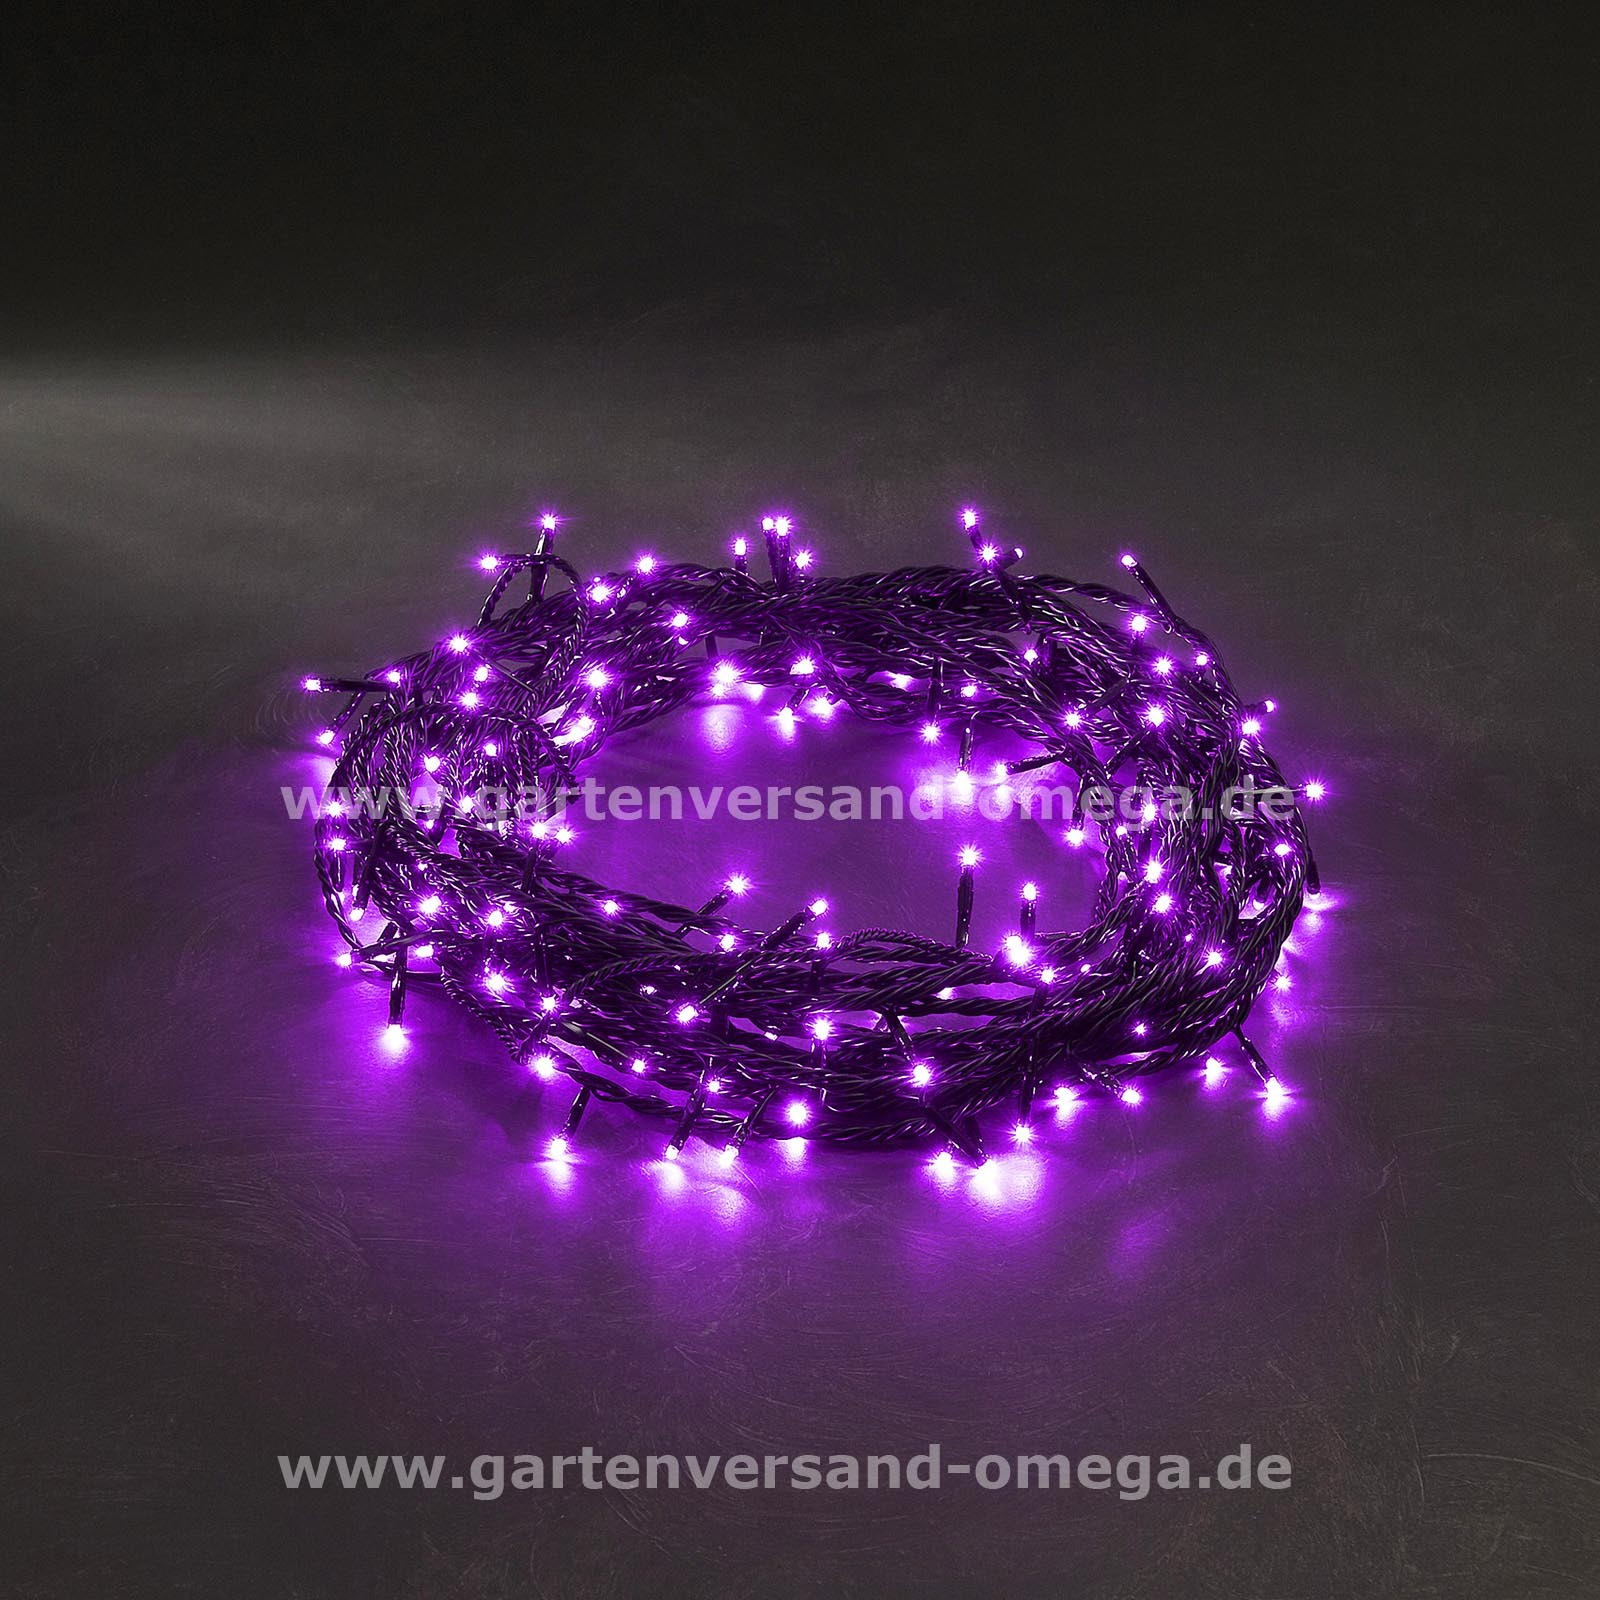 mikro led lichterkette in verschiedenen farben bunte led lichterkette mehfarbige lichterkette. Black Bedroom Furniture Sets. Home Design Ideas